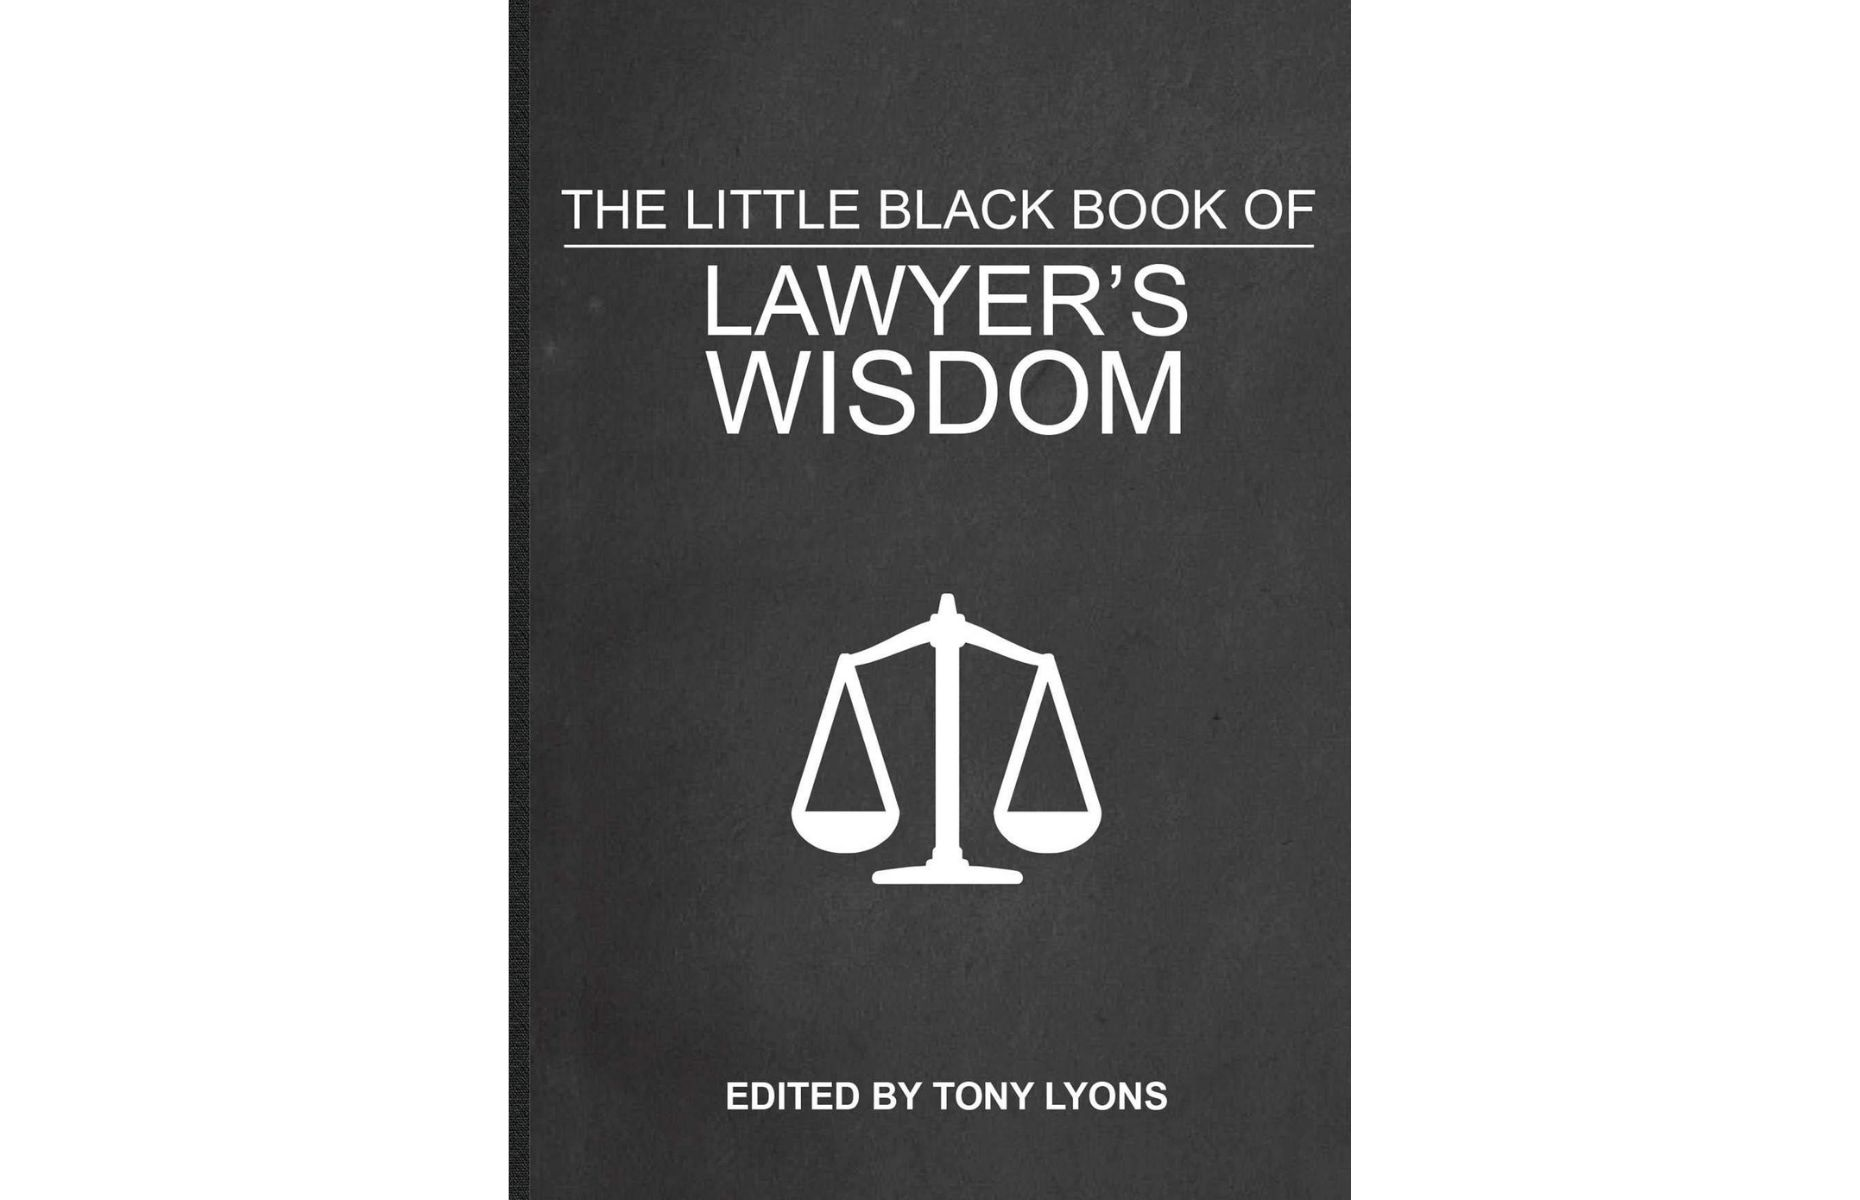 #8 The-little-black-book-of-lawyer-wisdom